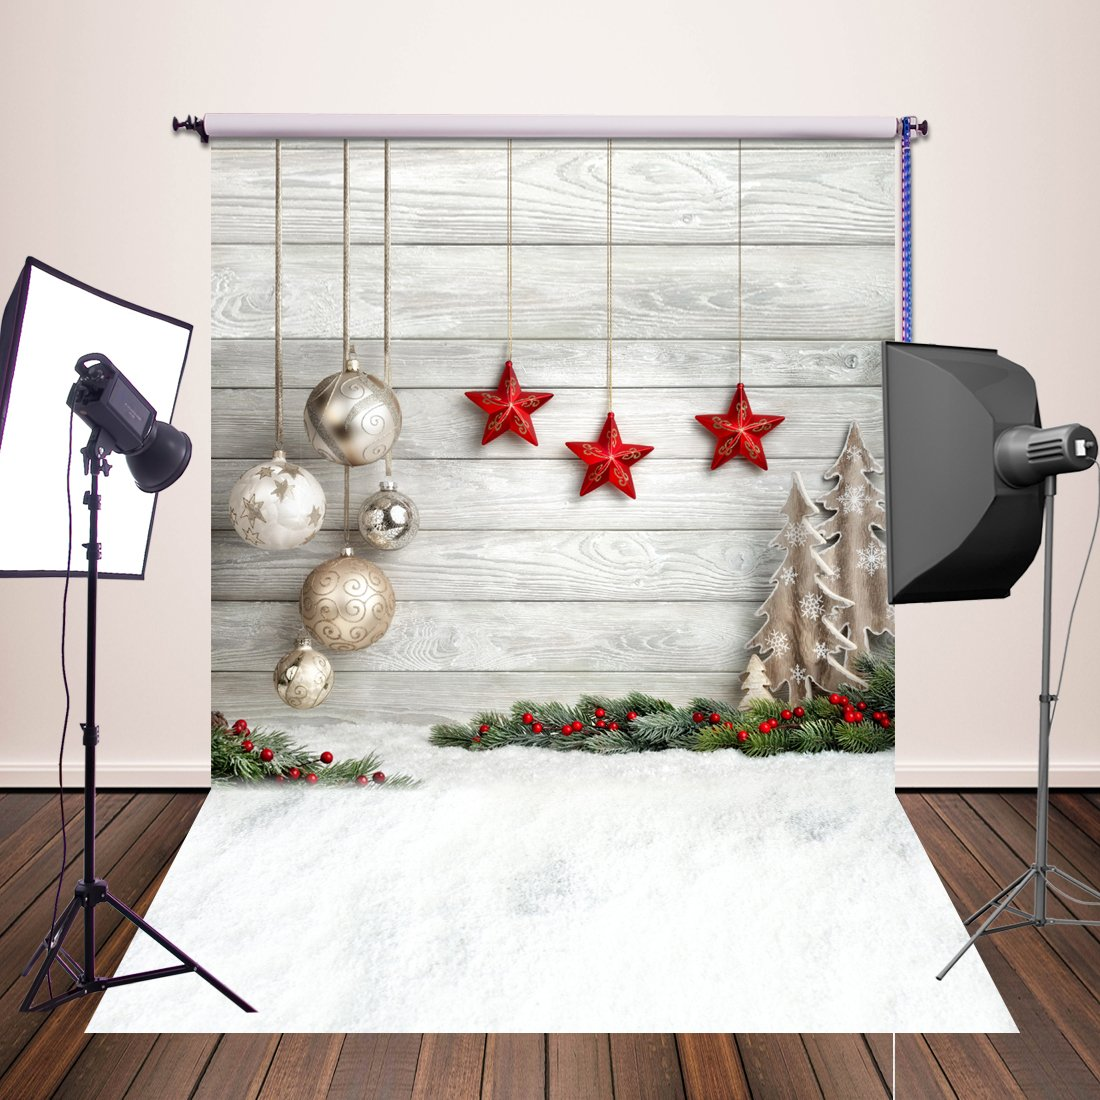 Huayi 5x7ft photography backdrops christmas starts background newborn photo props yj 345